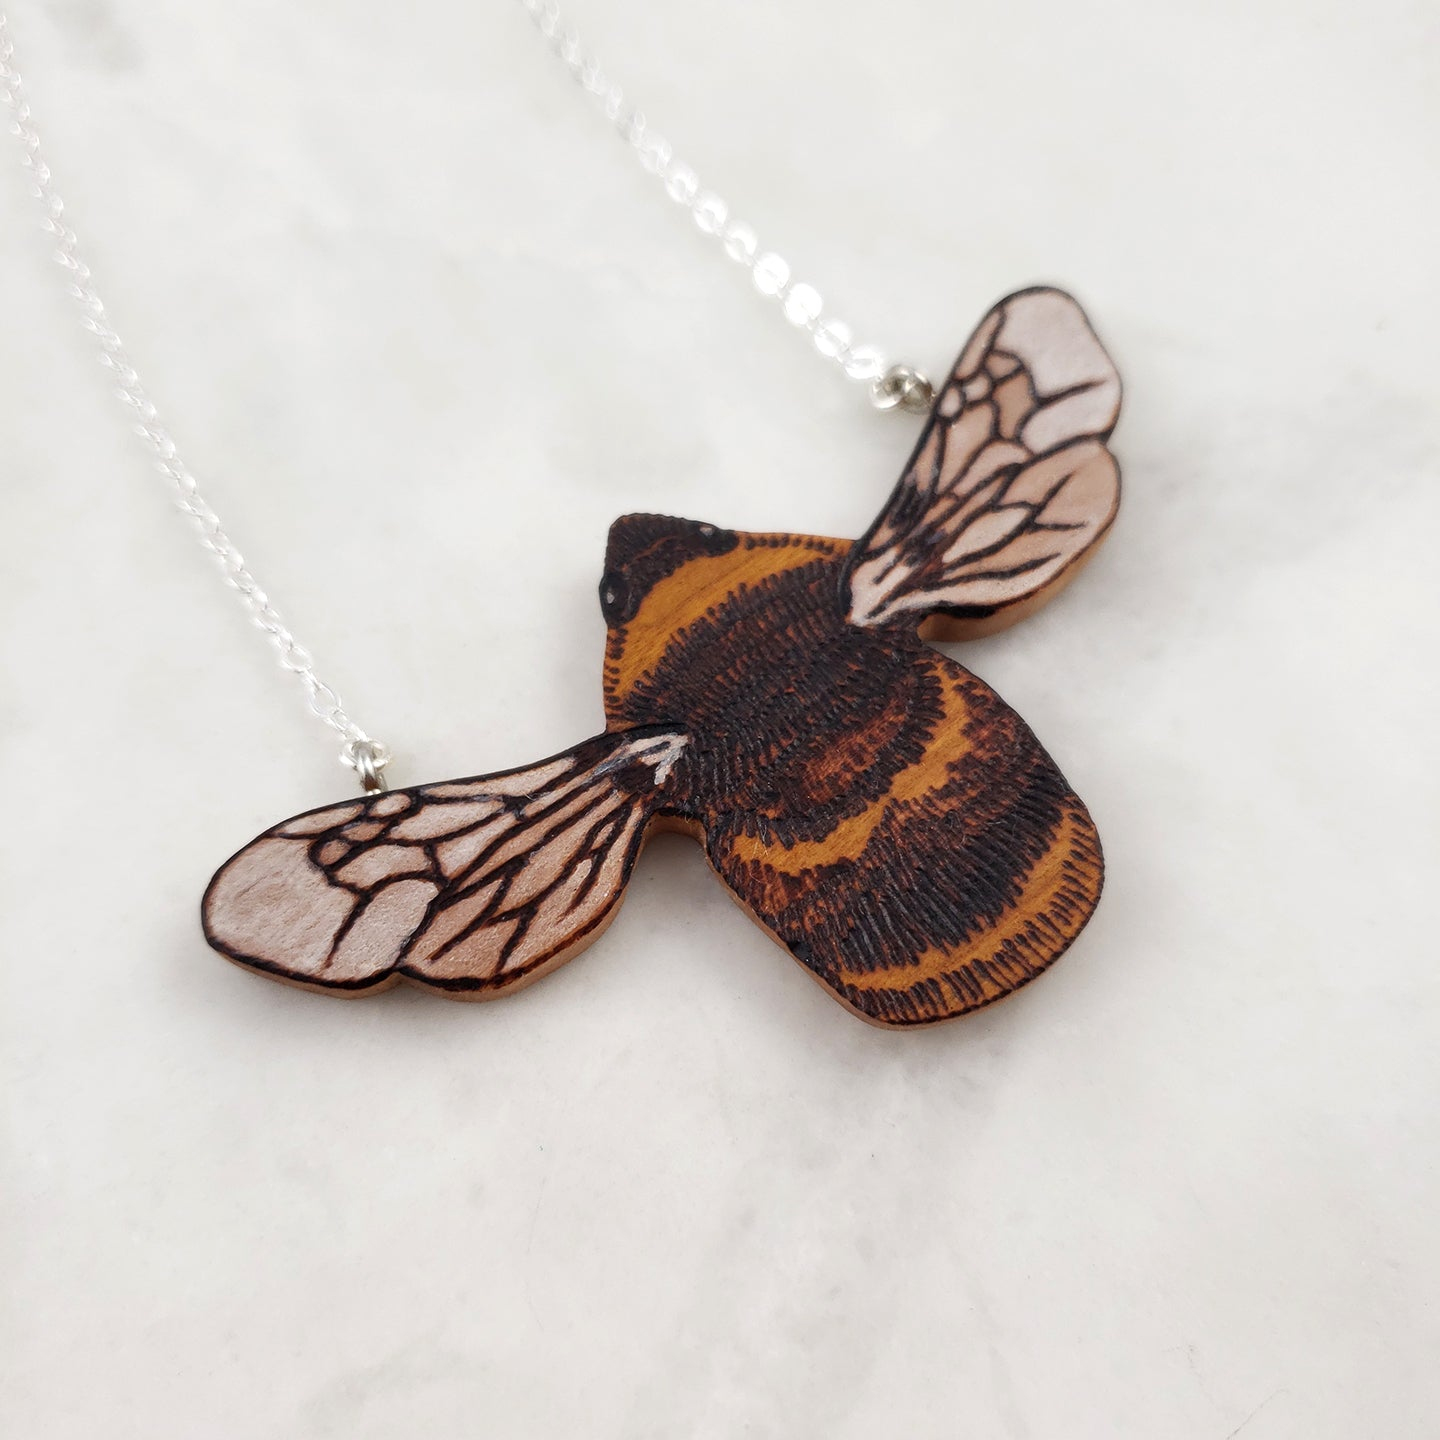 Wood burned Moth or Butterfly Necklace